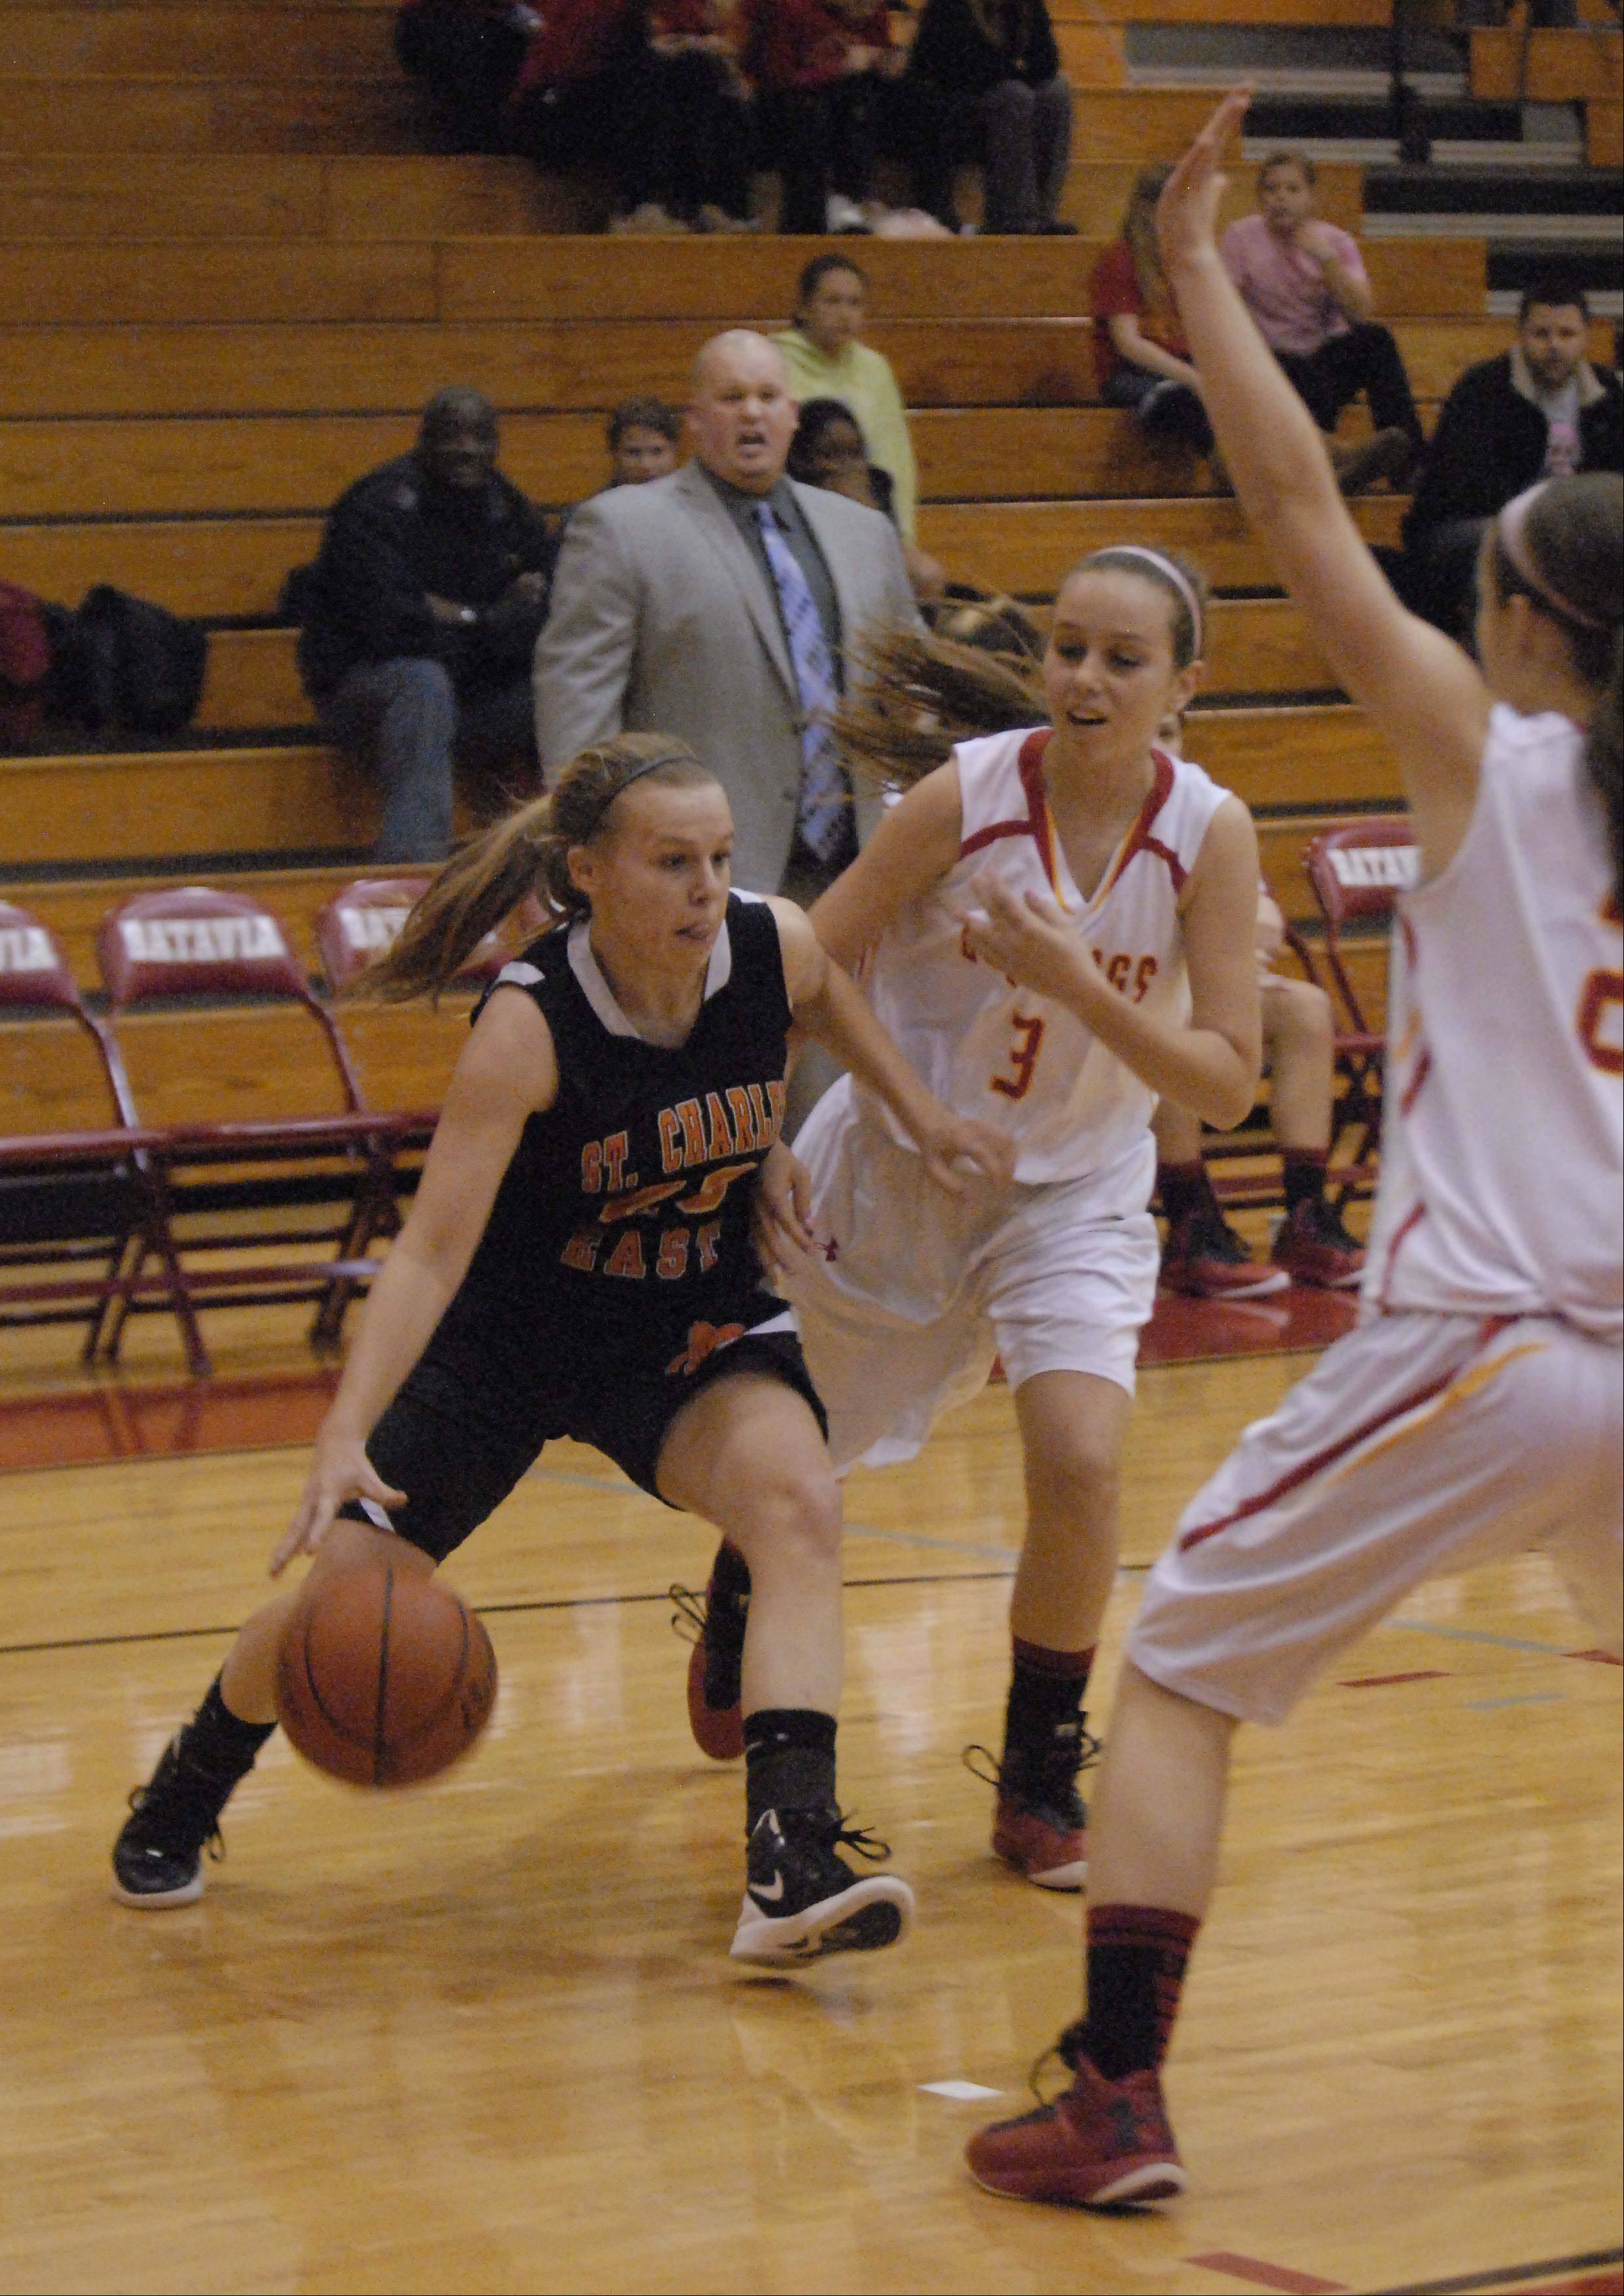 Images from the St. Charles East vs. Batavia girls basketball game Tuesday, January 8, 2013.